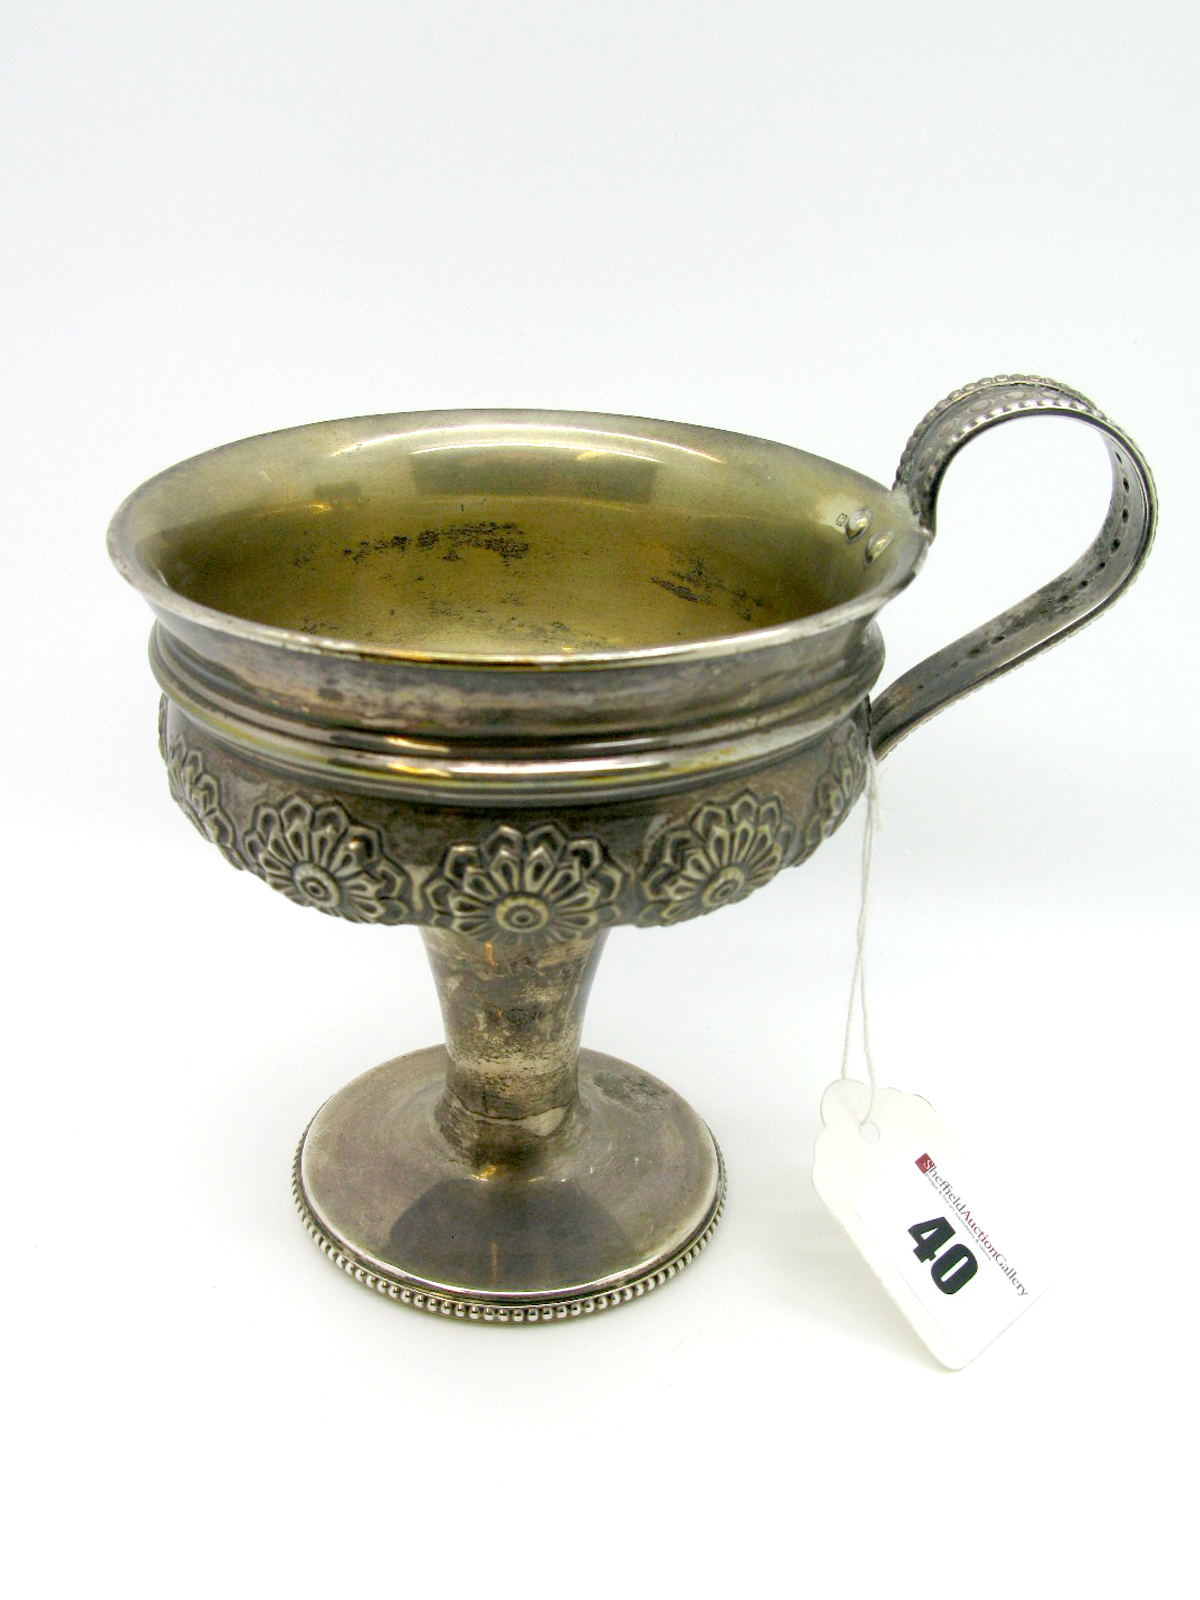 Lot 40 - A Decorative Hallmarked Silver Pedestal Cup, Nathan & Hayes, Chester 1907, the shallow circular bowl